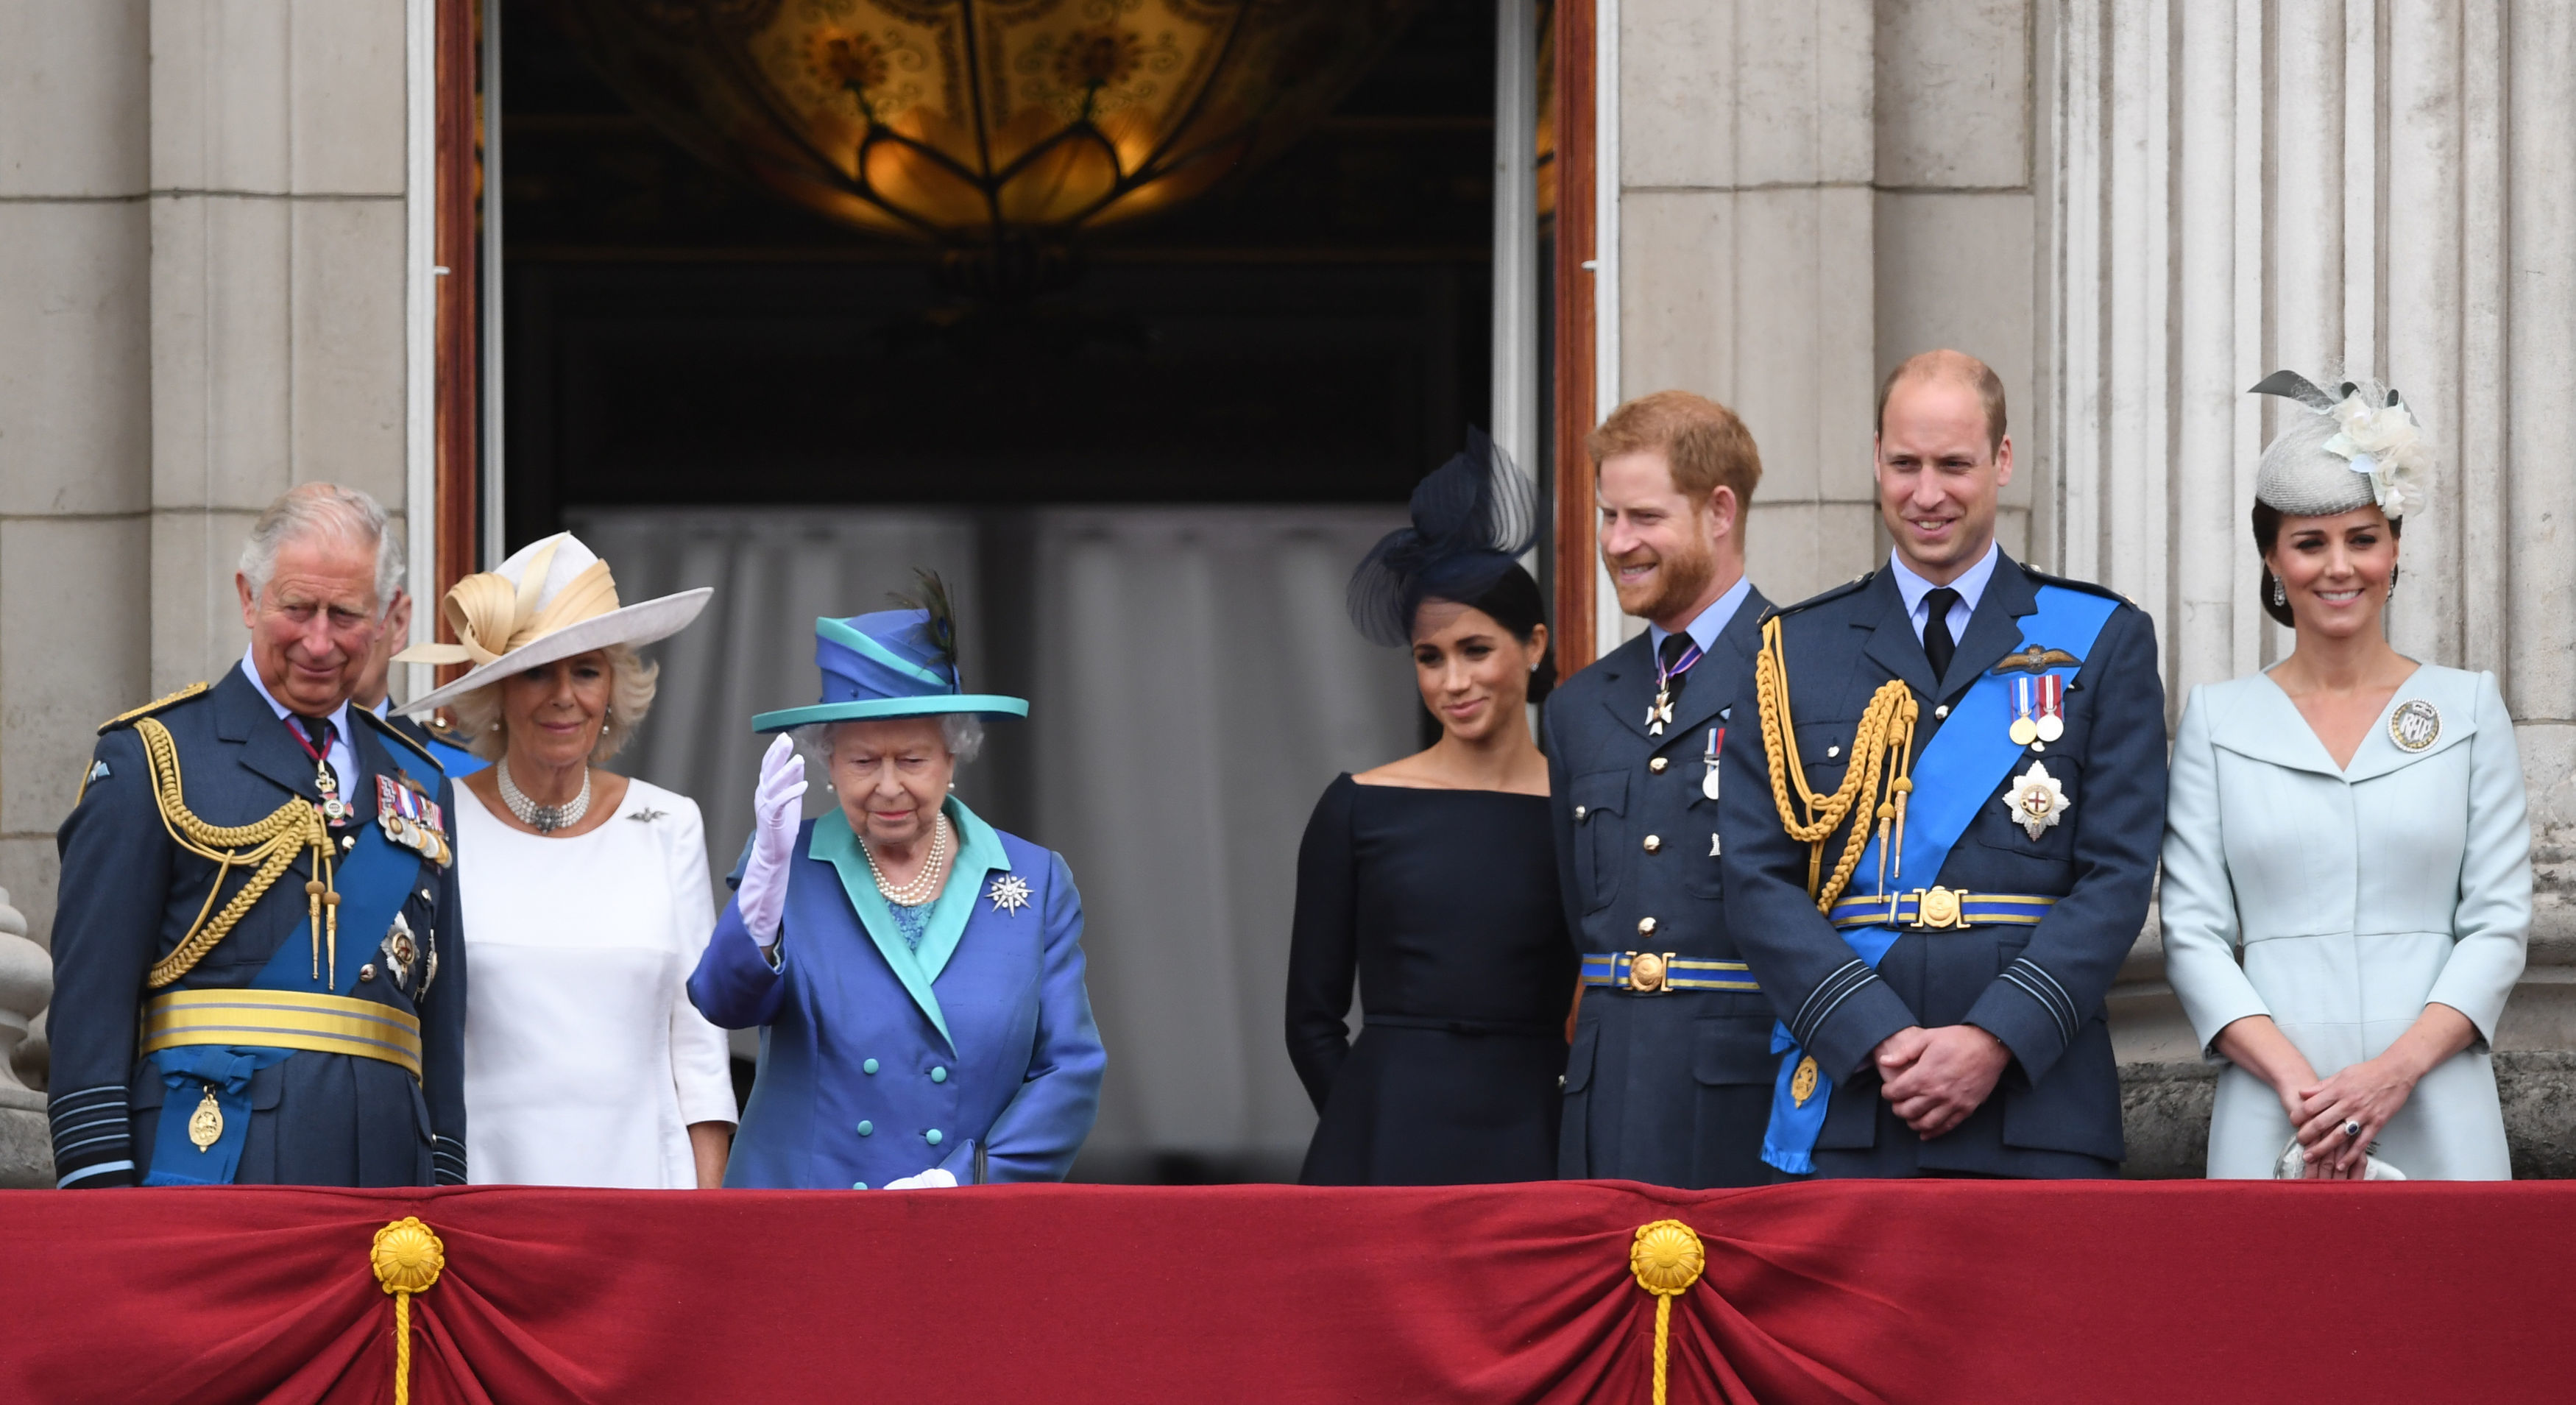 Harry and Meghan with the royals on the balcony at Buckingham Palace